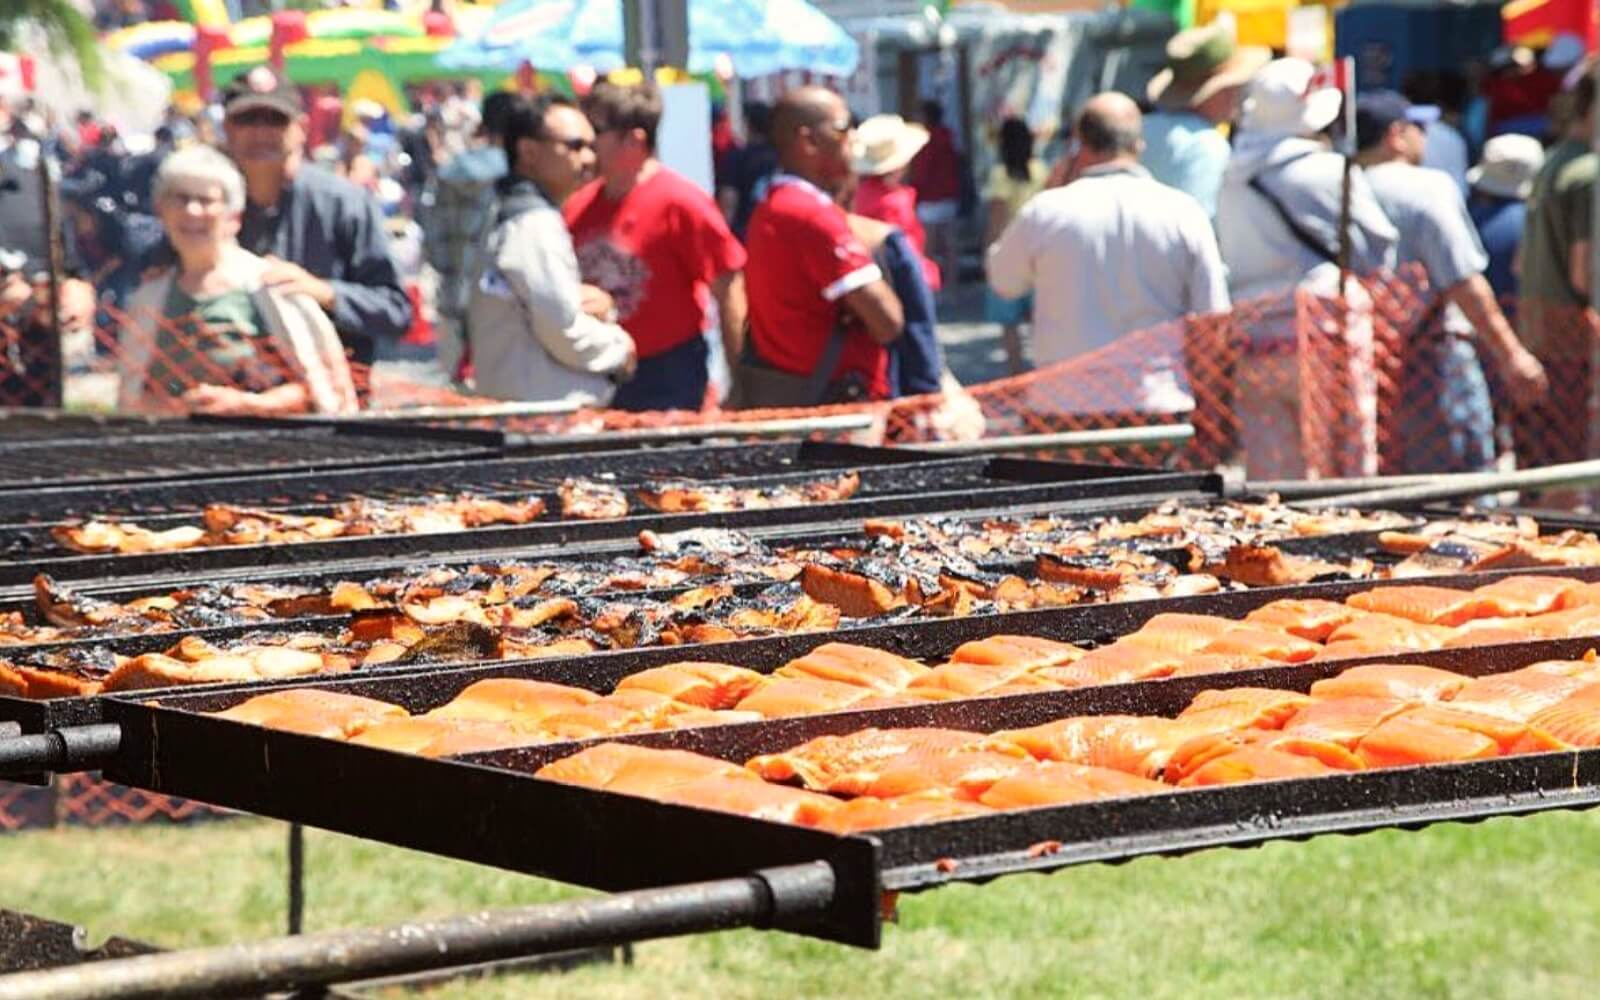 Dozens of pieces of sockeye sit on a grill at the Steveston Salmon Festival